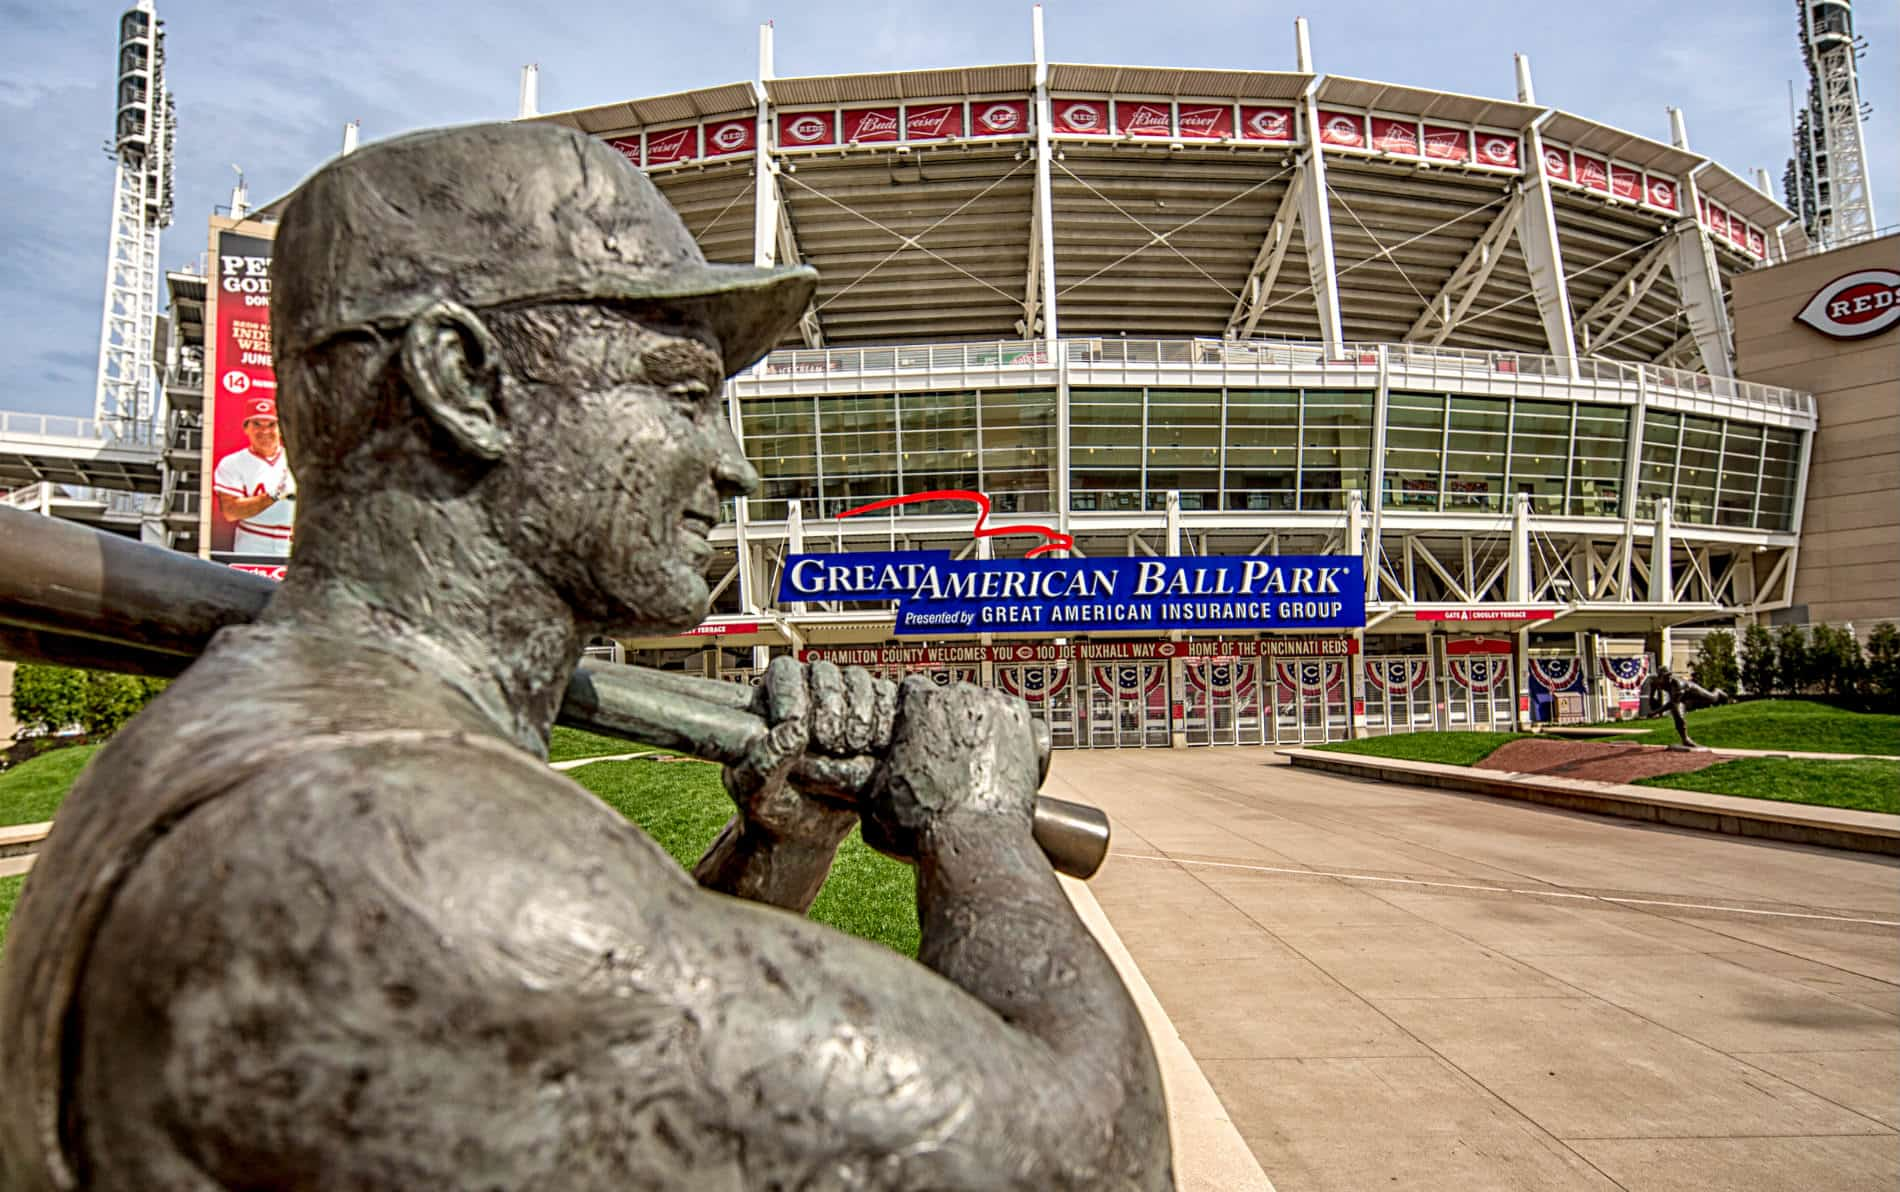 Large gray sculpture of baseball player in front of Great American Ballpark baseball stadium